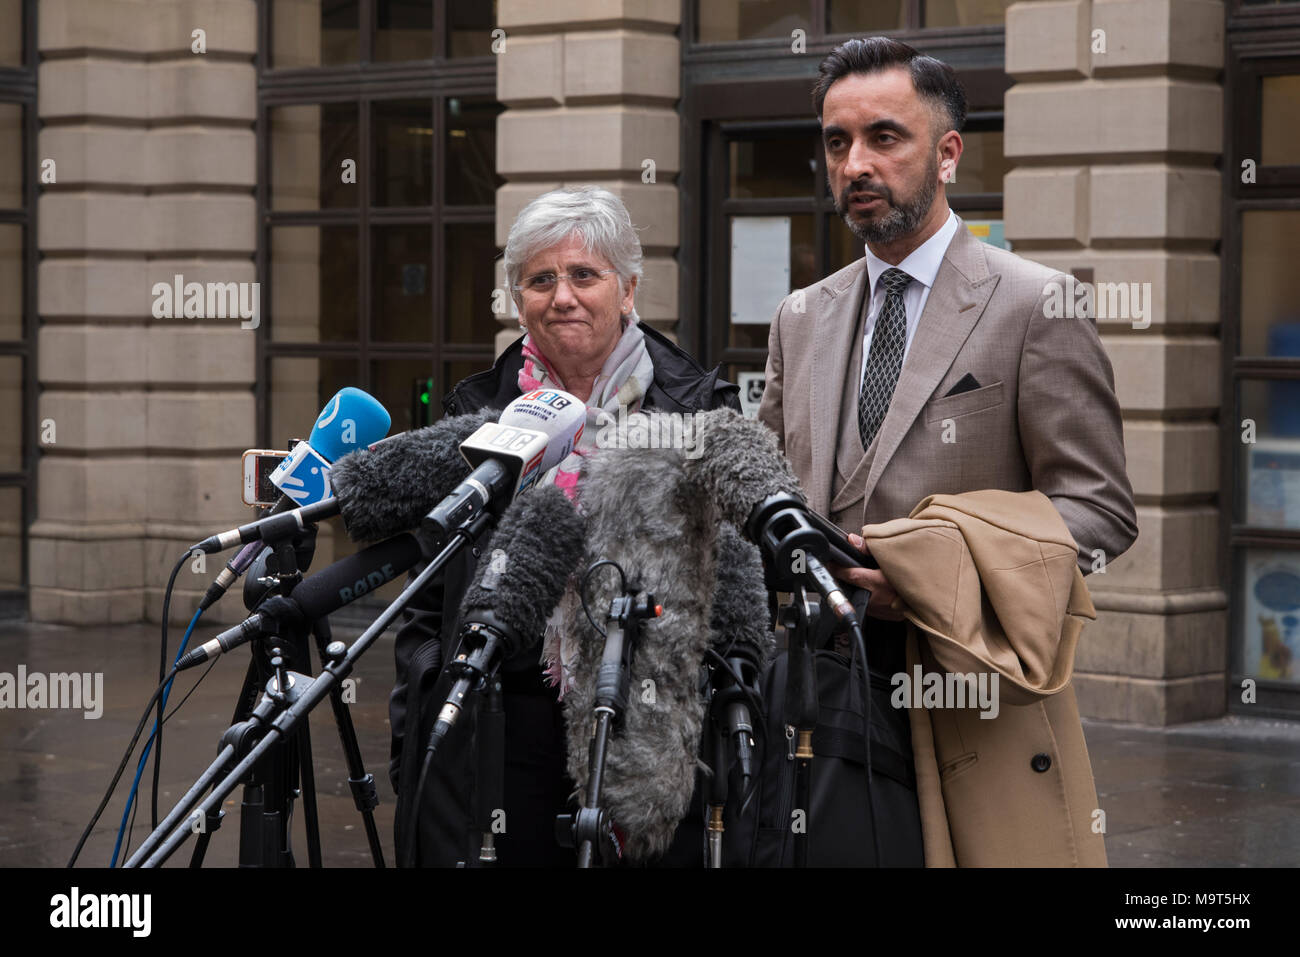 Clara Ponsati, ex-Catalan education minister, with her lawyer Aamer Anwar after being released on bail at Edinburgh Sheriff Court, 28th March 2018. - Stock Image